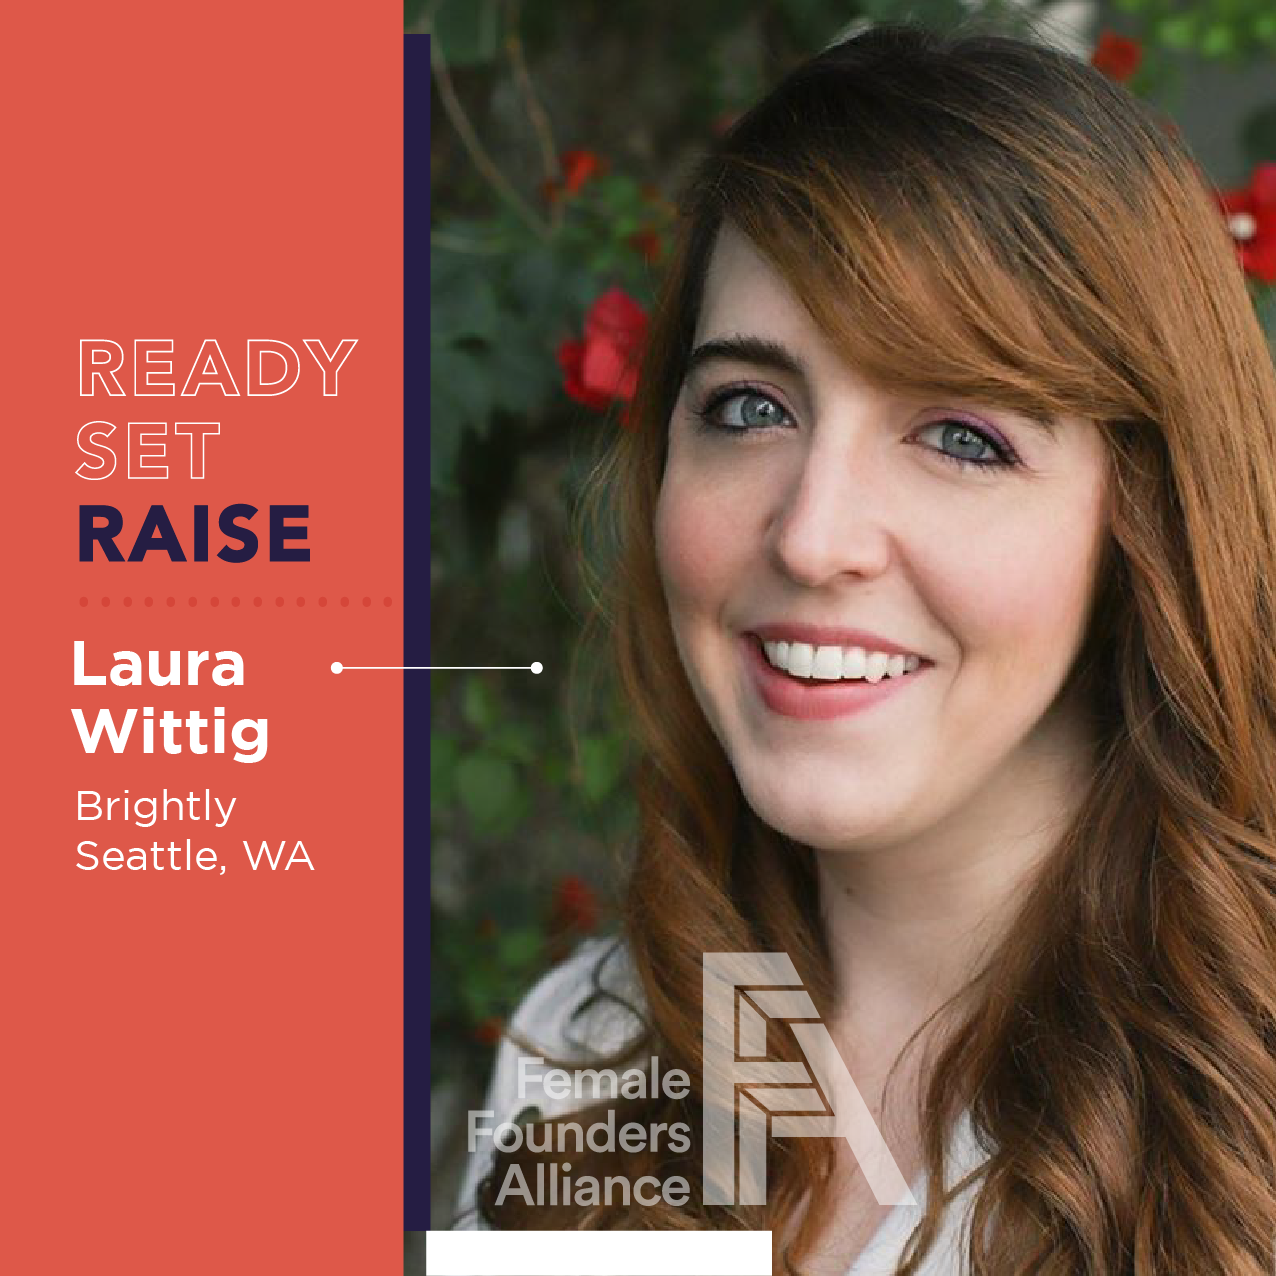 https://femalefounders.org/wp-content/uploads/2020/10/Social-Card-Laura-Wittig.png